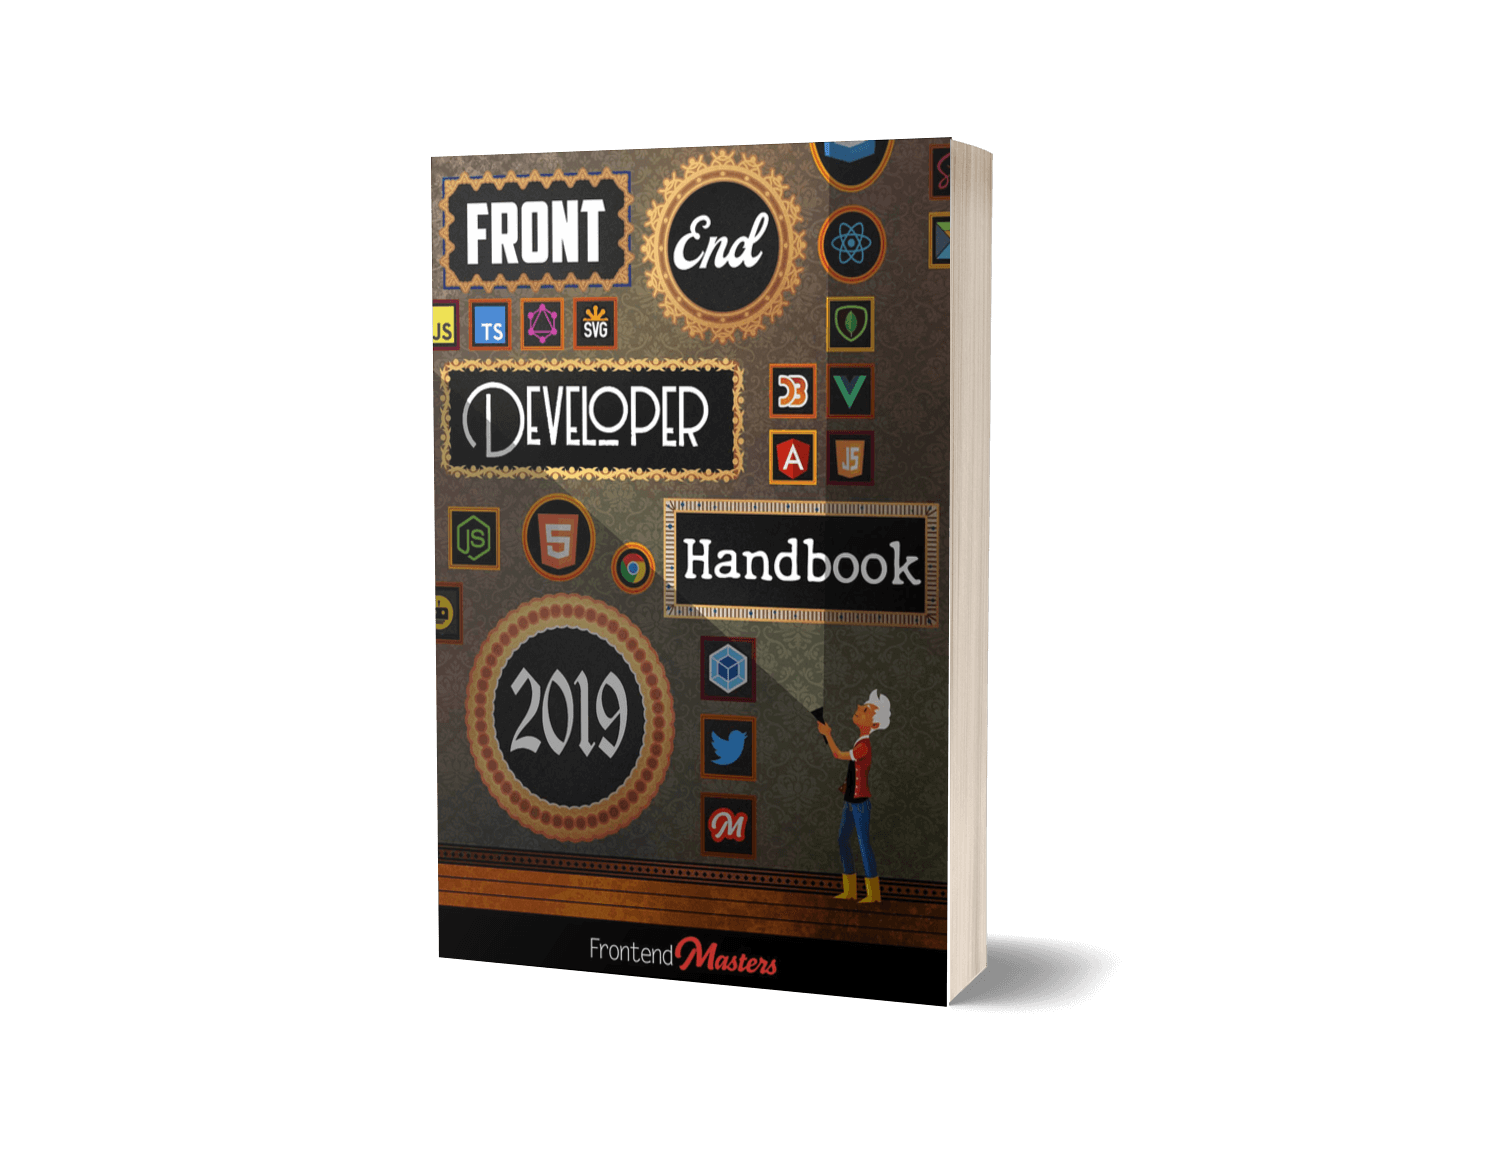 Best Javascript Developer Career Roadmap: Front-End Developer Handbook - Front-end Developer Handbook 2019 is a complete getting-started guide for anyone who wants to become a self-taught front-end web developer in present year. It is a free programming book, which is accessible online or downloadable in pdf or epub formats. It talks about everything from all the various tools developers might encounter in 2019 to practical career advice like salary expectations.